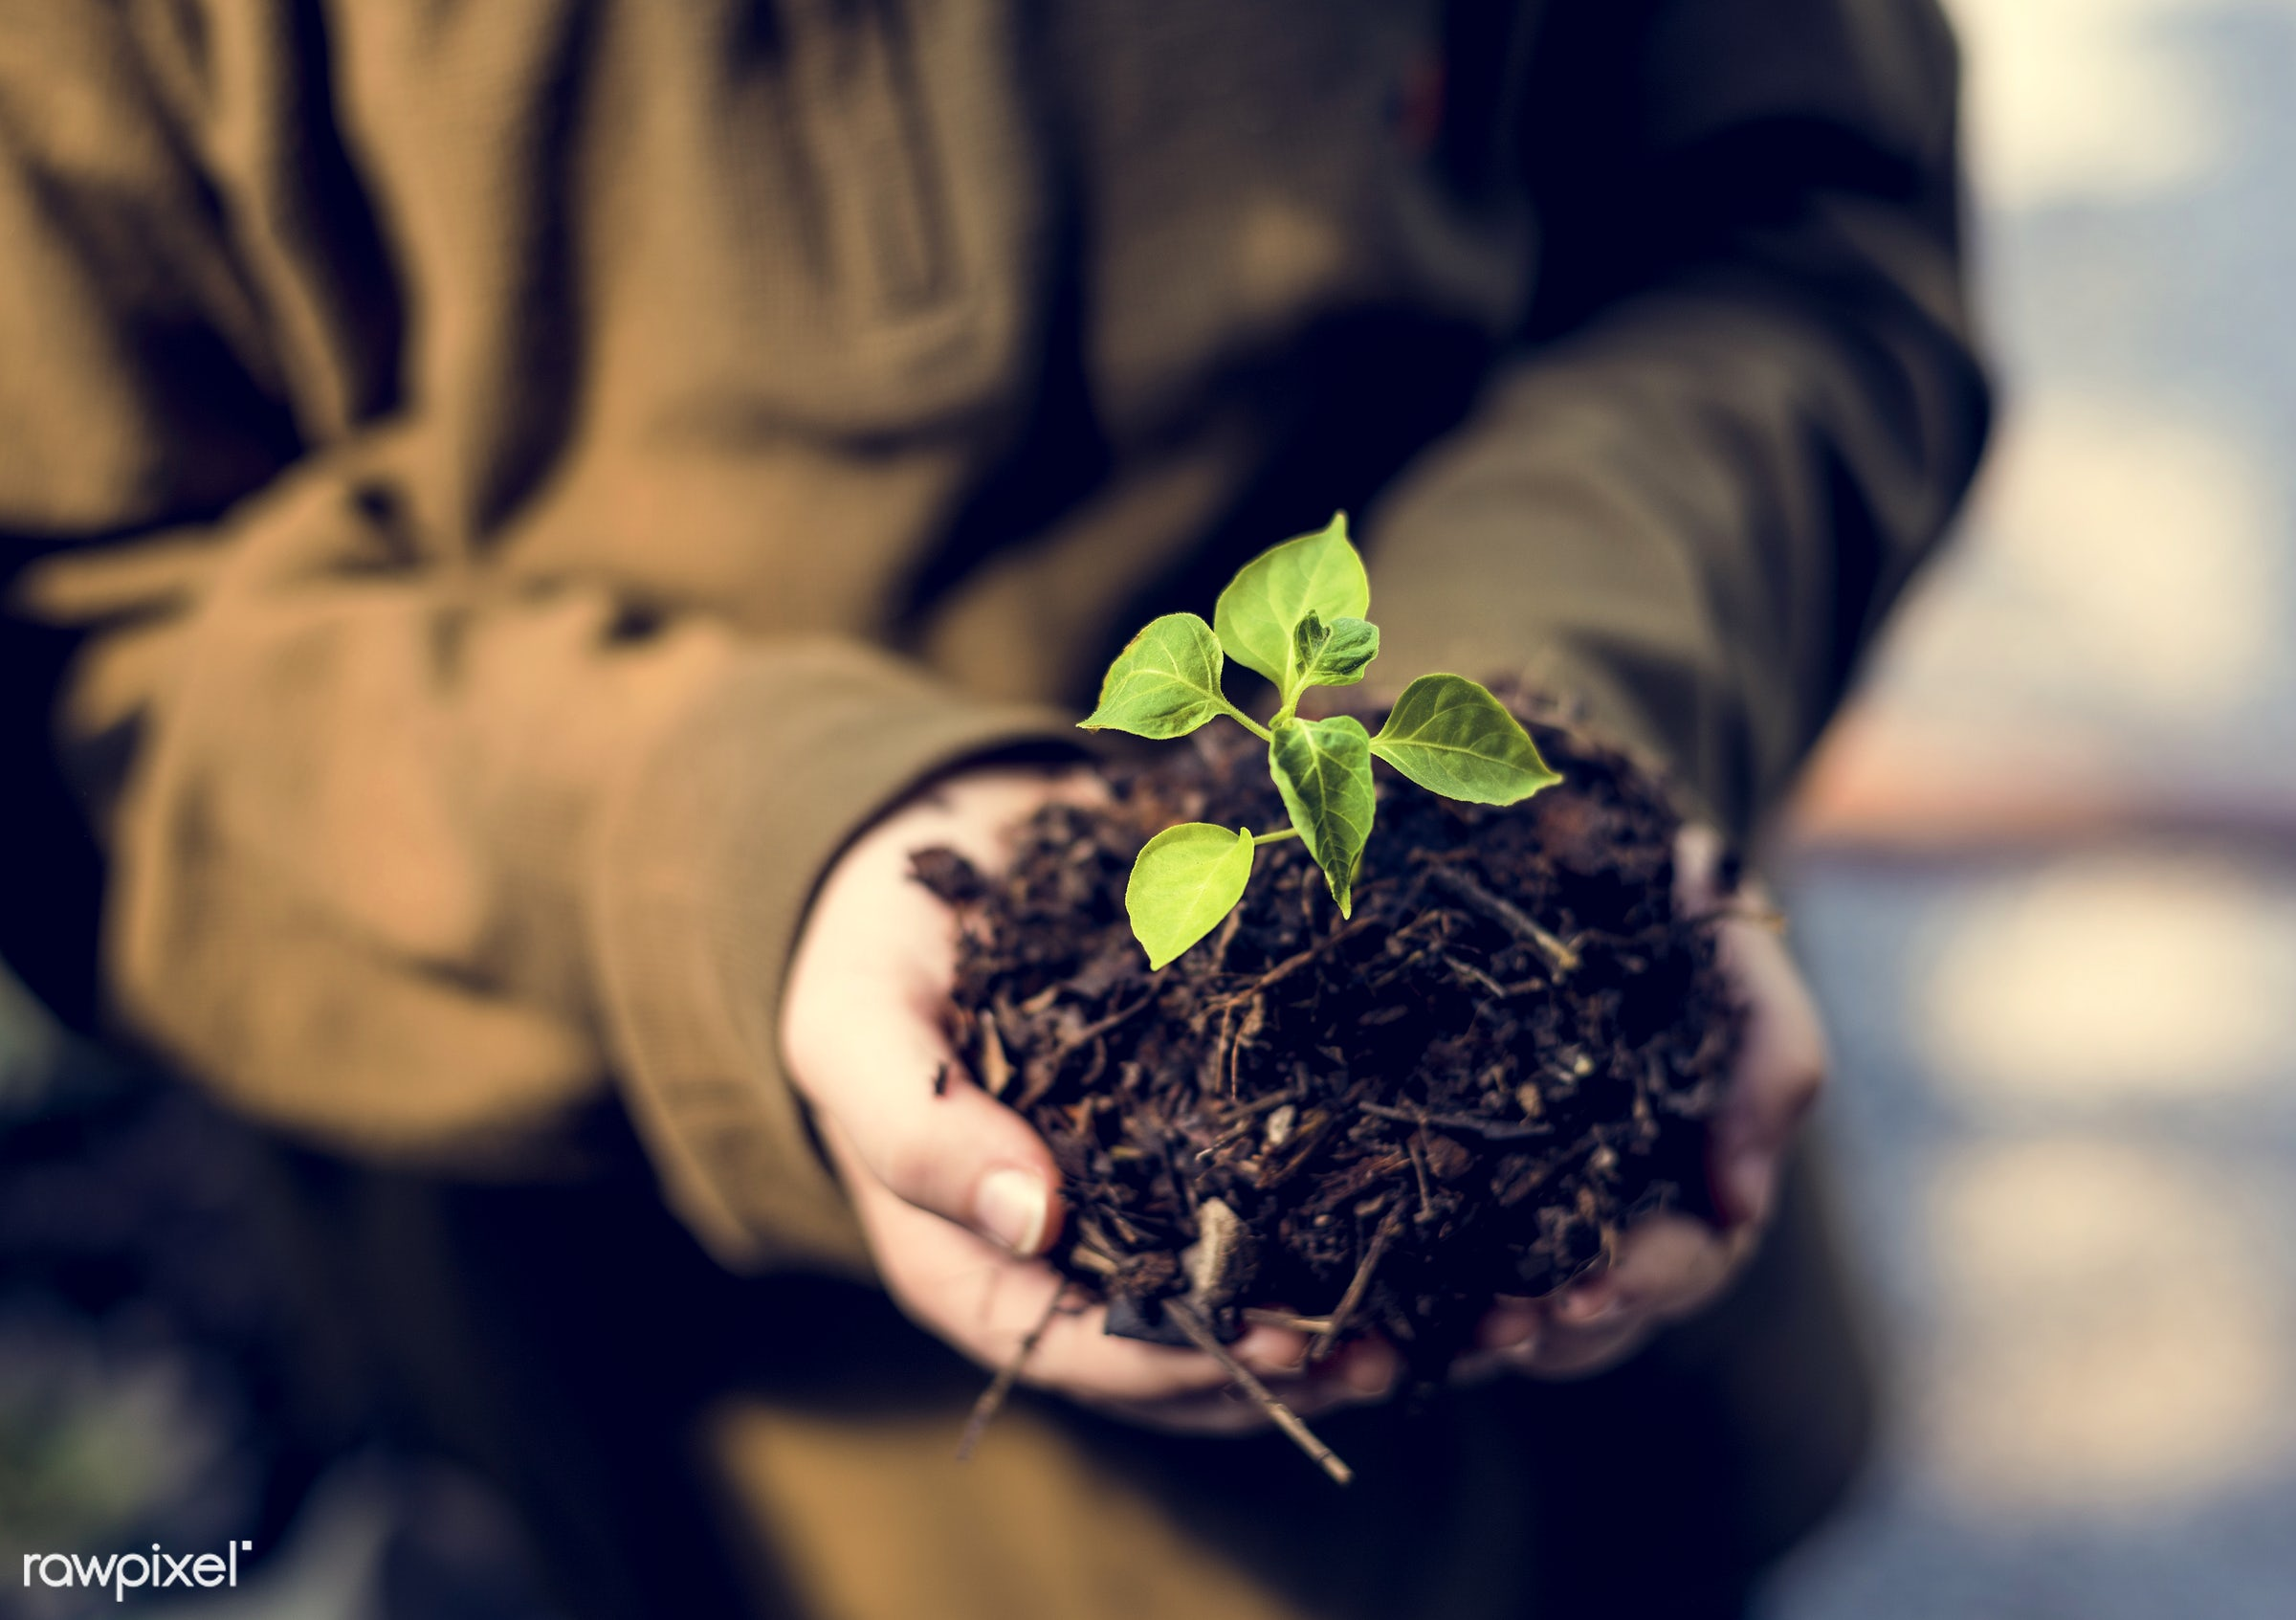 plant, concept, botany, ground, leaf, people, hand, life, tree, sustain, nature, conservation, care, ecology, green, hold,...